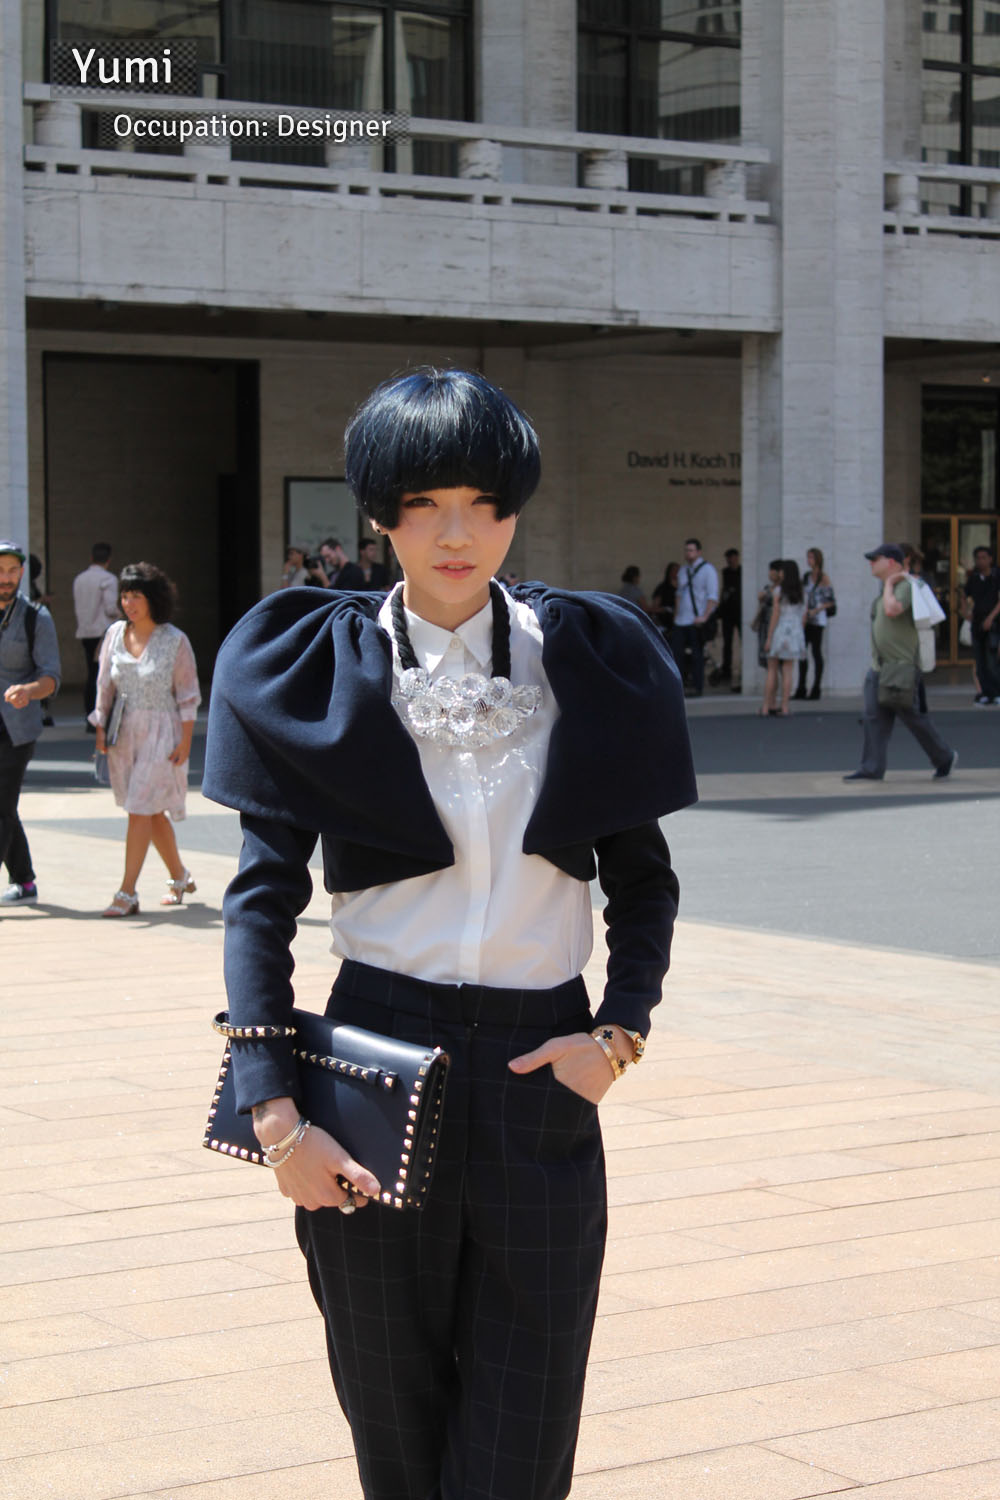 Corra's New York Fashion Week Street Style Blog | Day 1 - Yumi from China